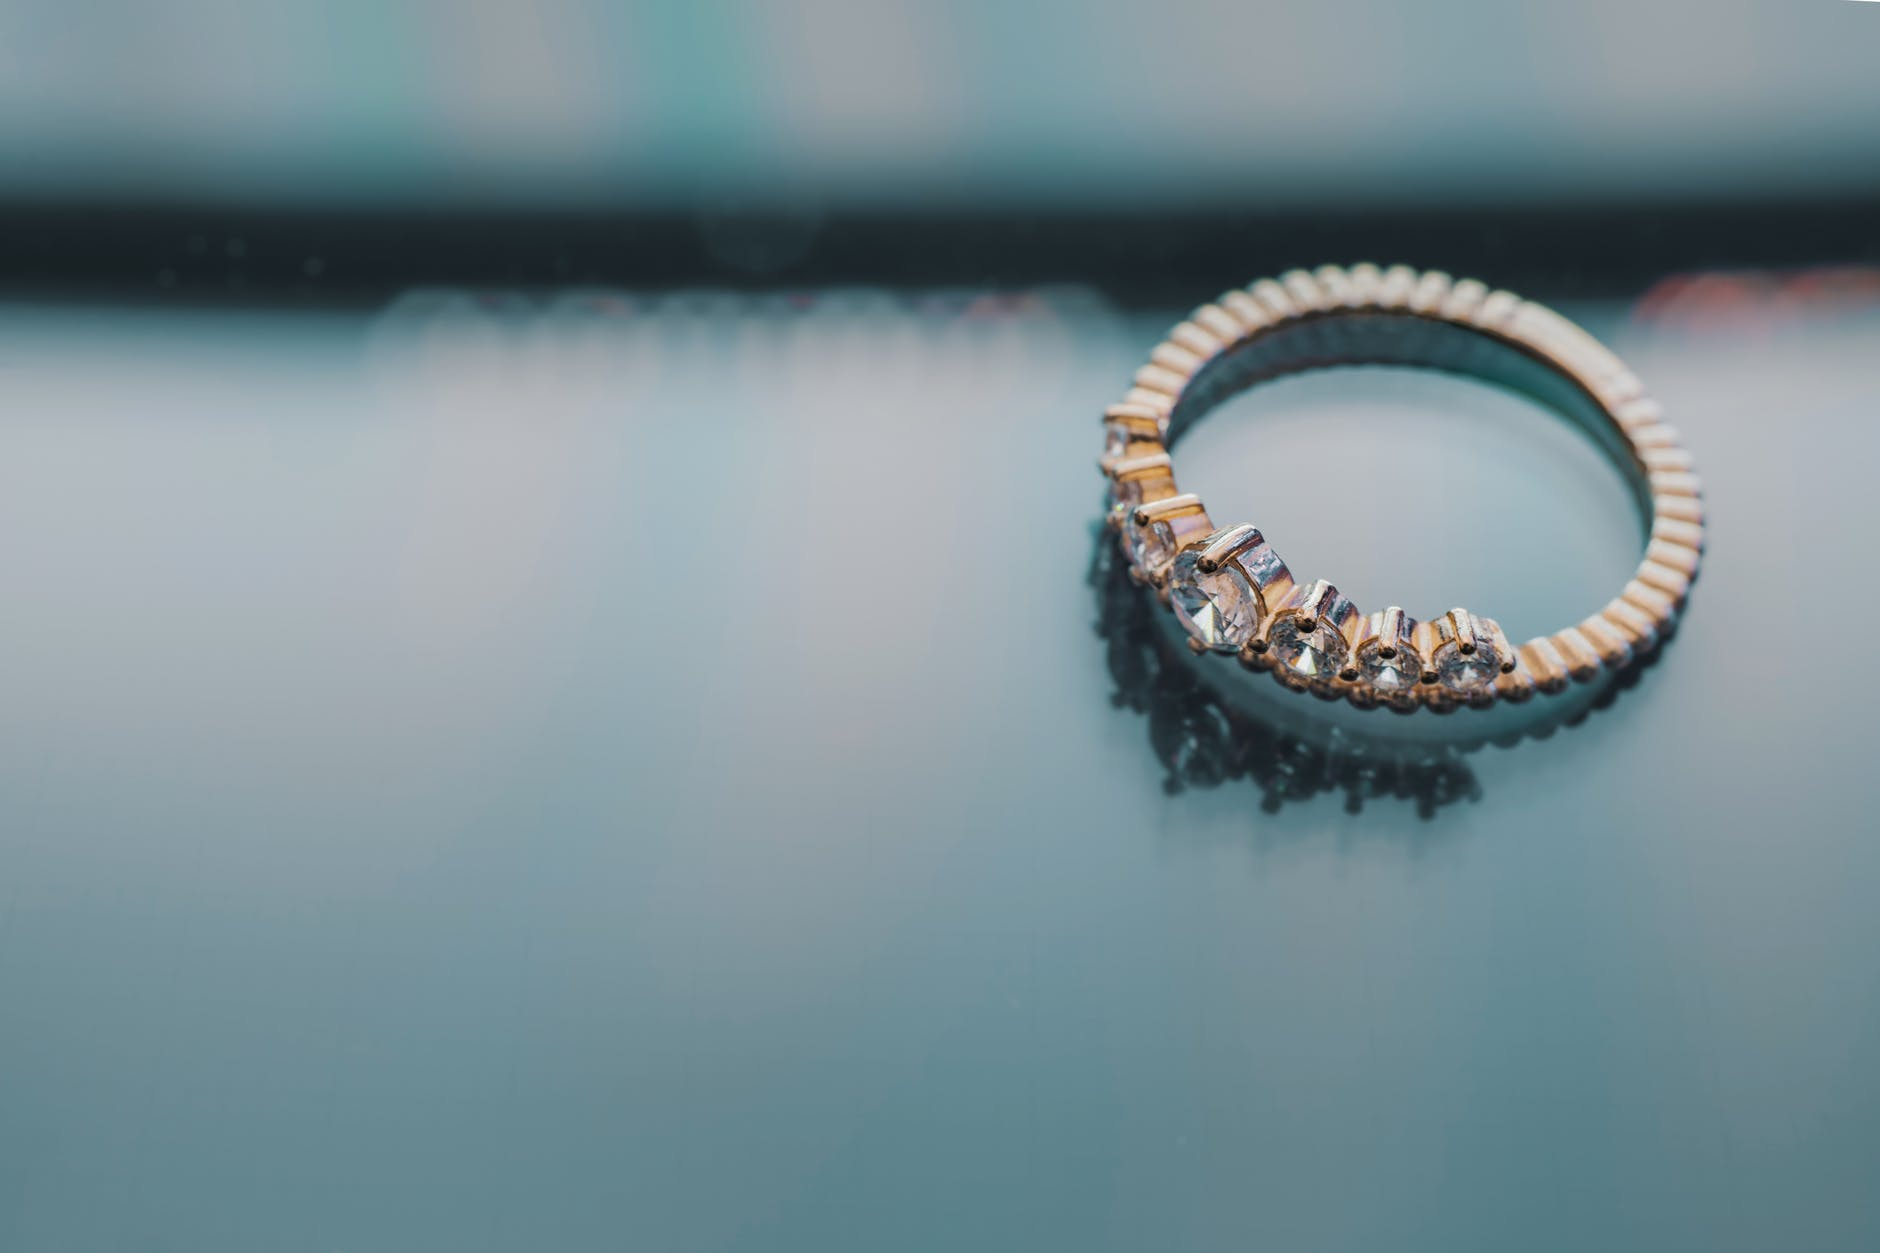 The ring that fell from the couch | Source: Pexels